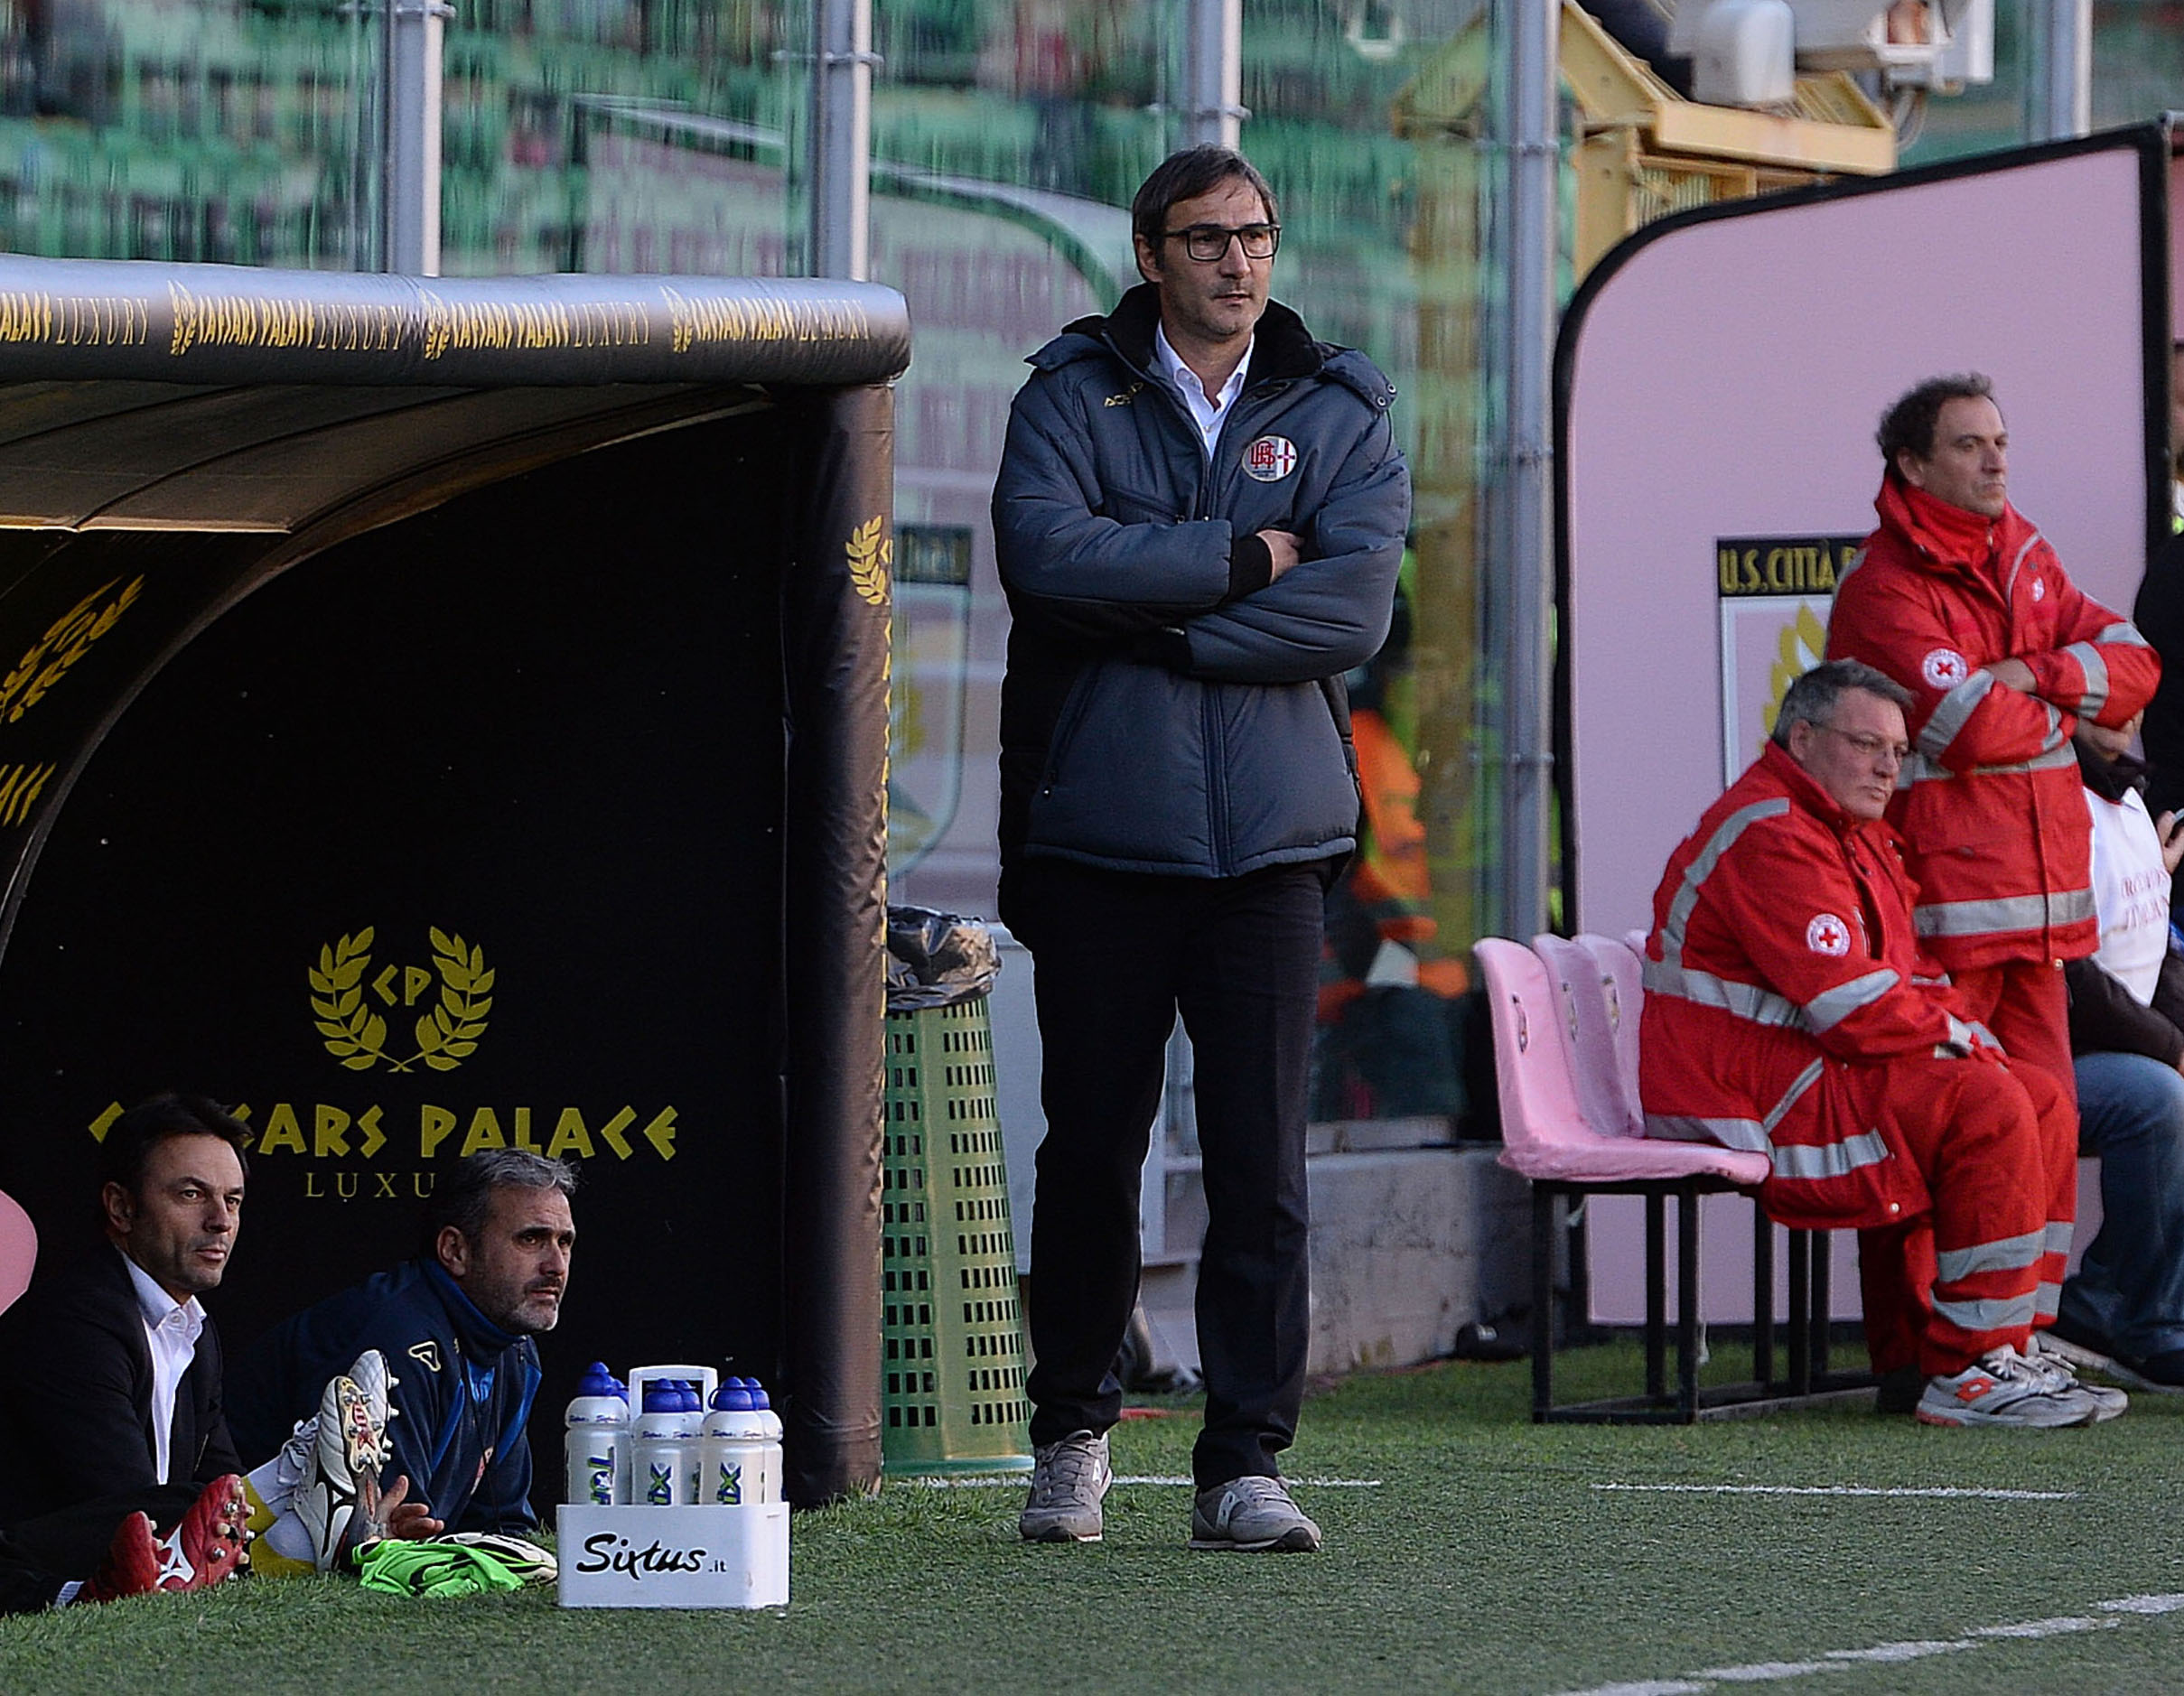 ipp/pasquale ponente palermo 2/12/2015 coppa italia 2015/2016 palermo - alessandria nella foto : l'allenatore angelo gregucci italy photo press - world copyright